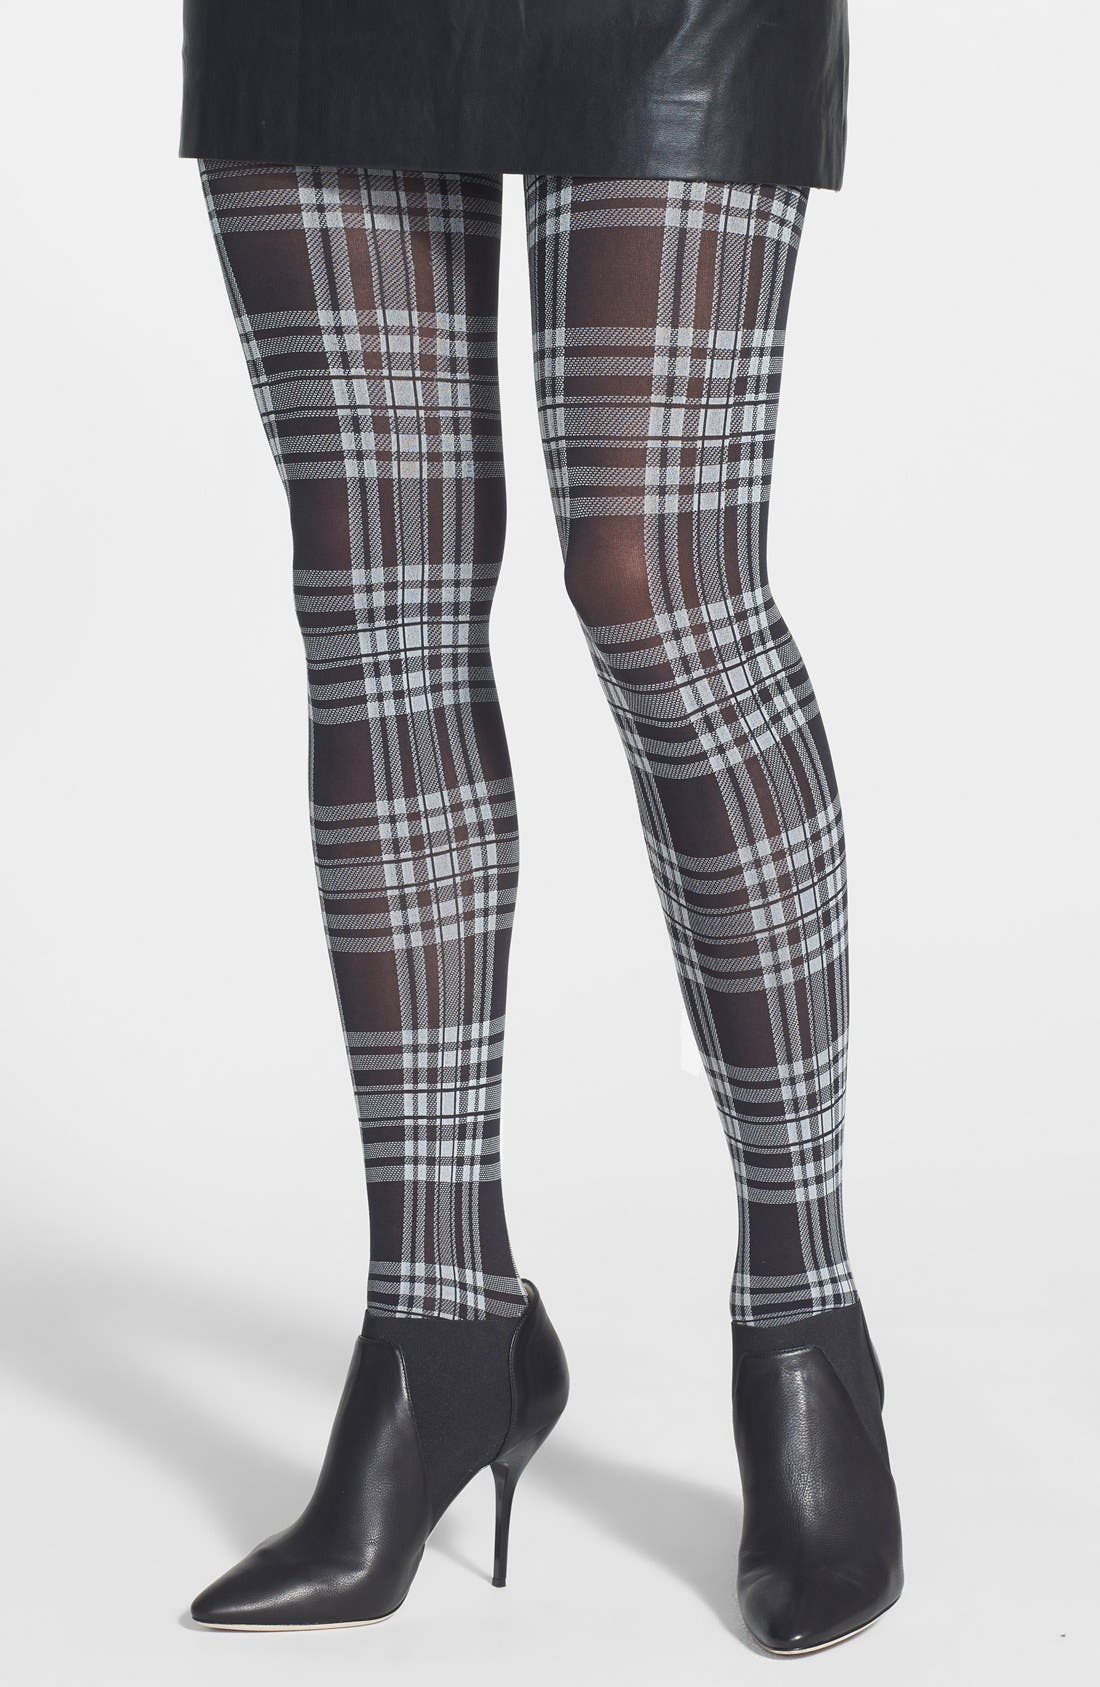 Alternate Image 1 Selected - Hue 'Schoolgirl' Plaid Tights